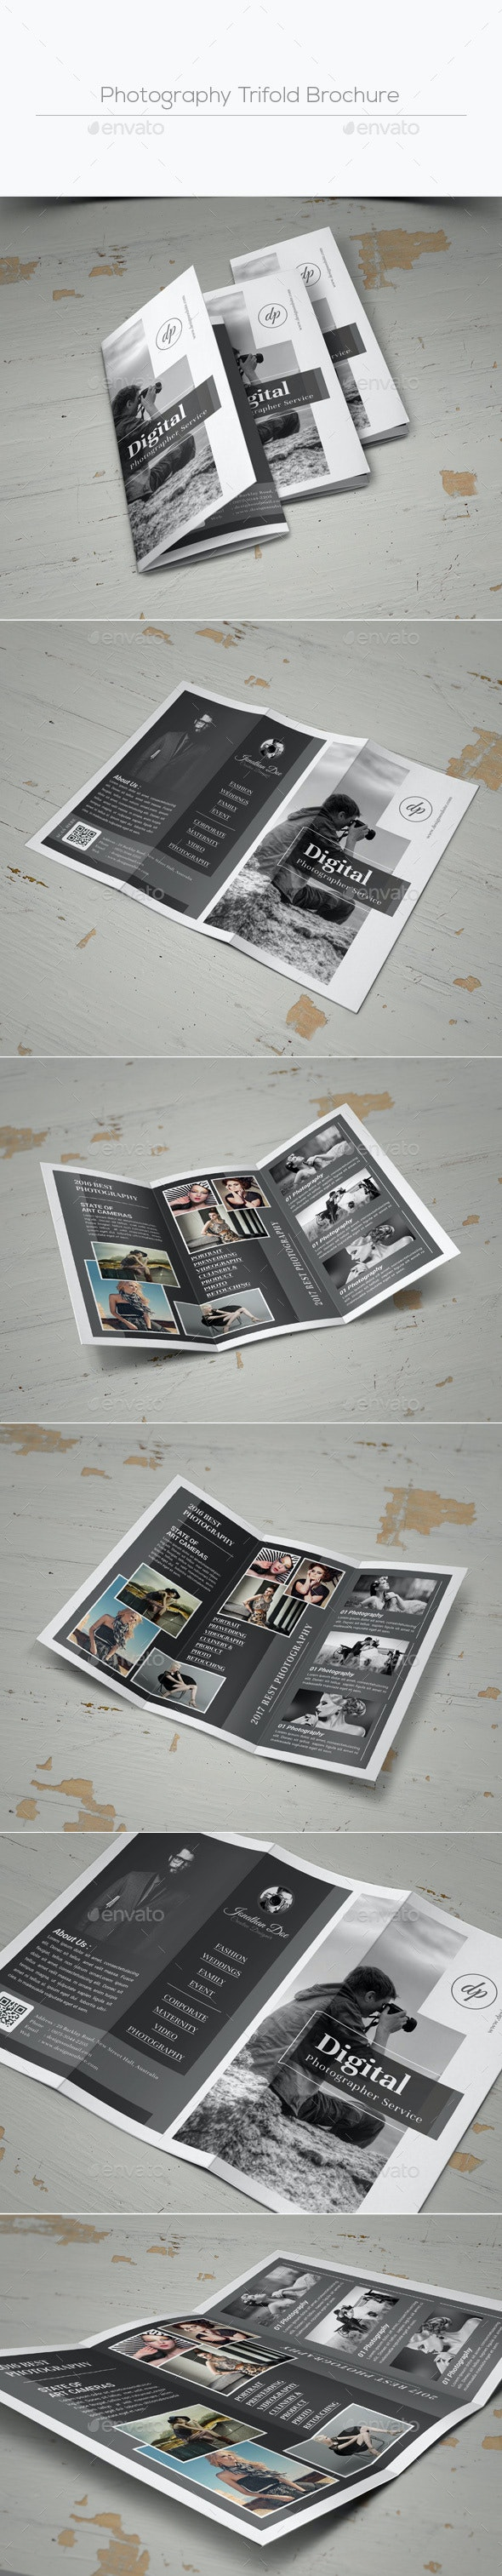 Photography Trifold Brochure - Corporate Brochures